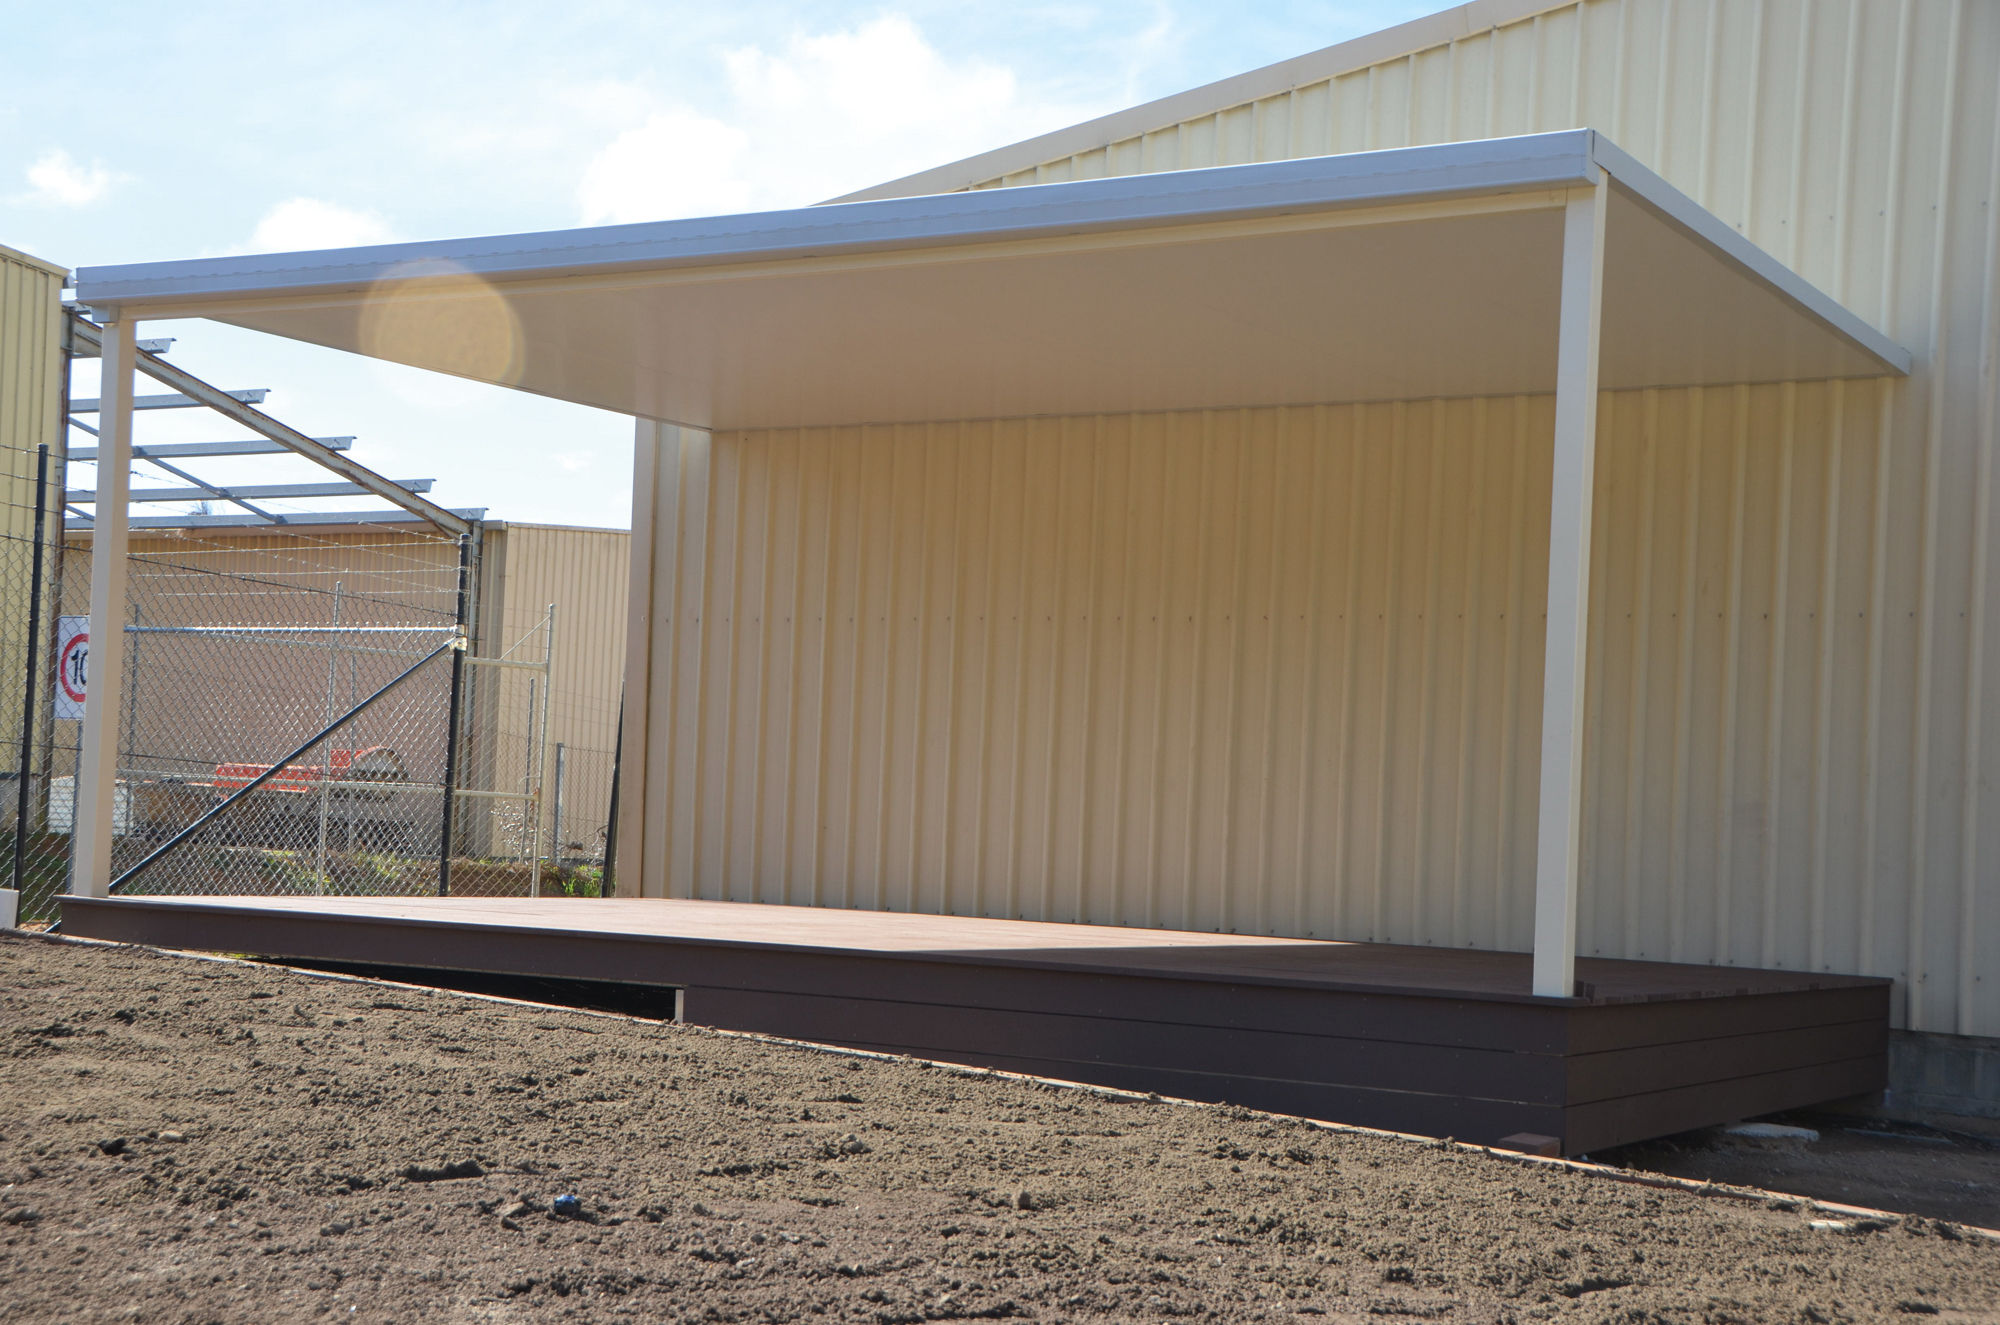 Sol home improvements gallery of steel roof styles for Shed with carport attached